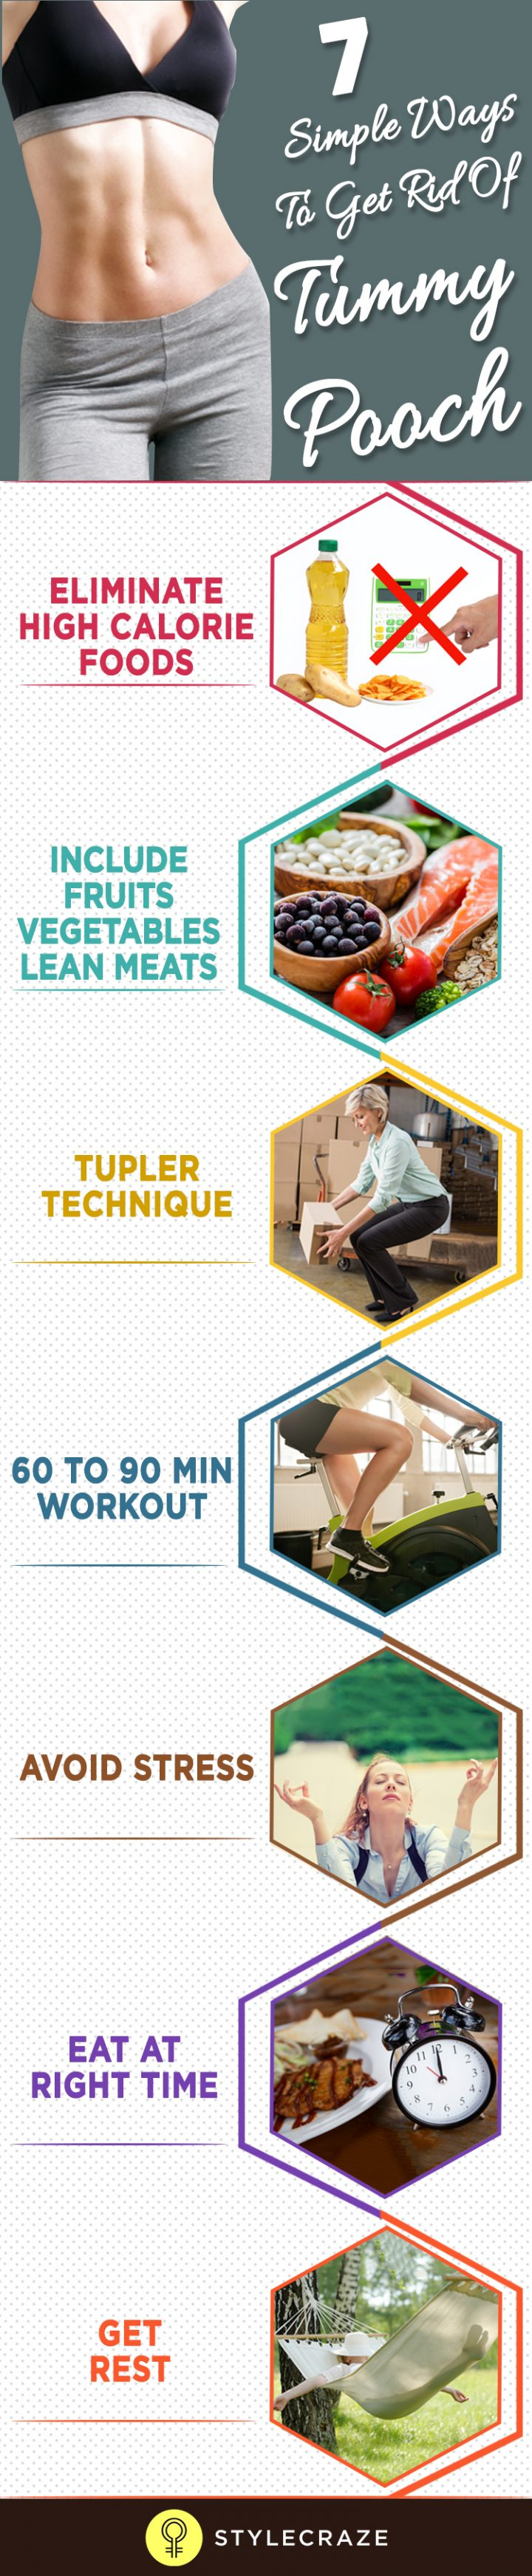 7 Simple Ways To Get Rid Of Tummy Pooch final